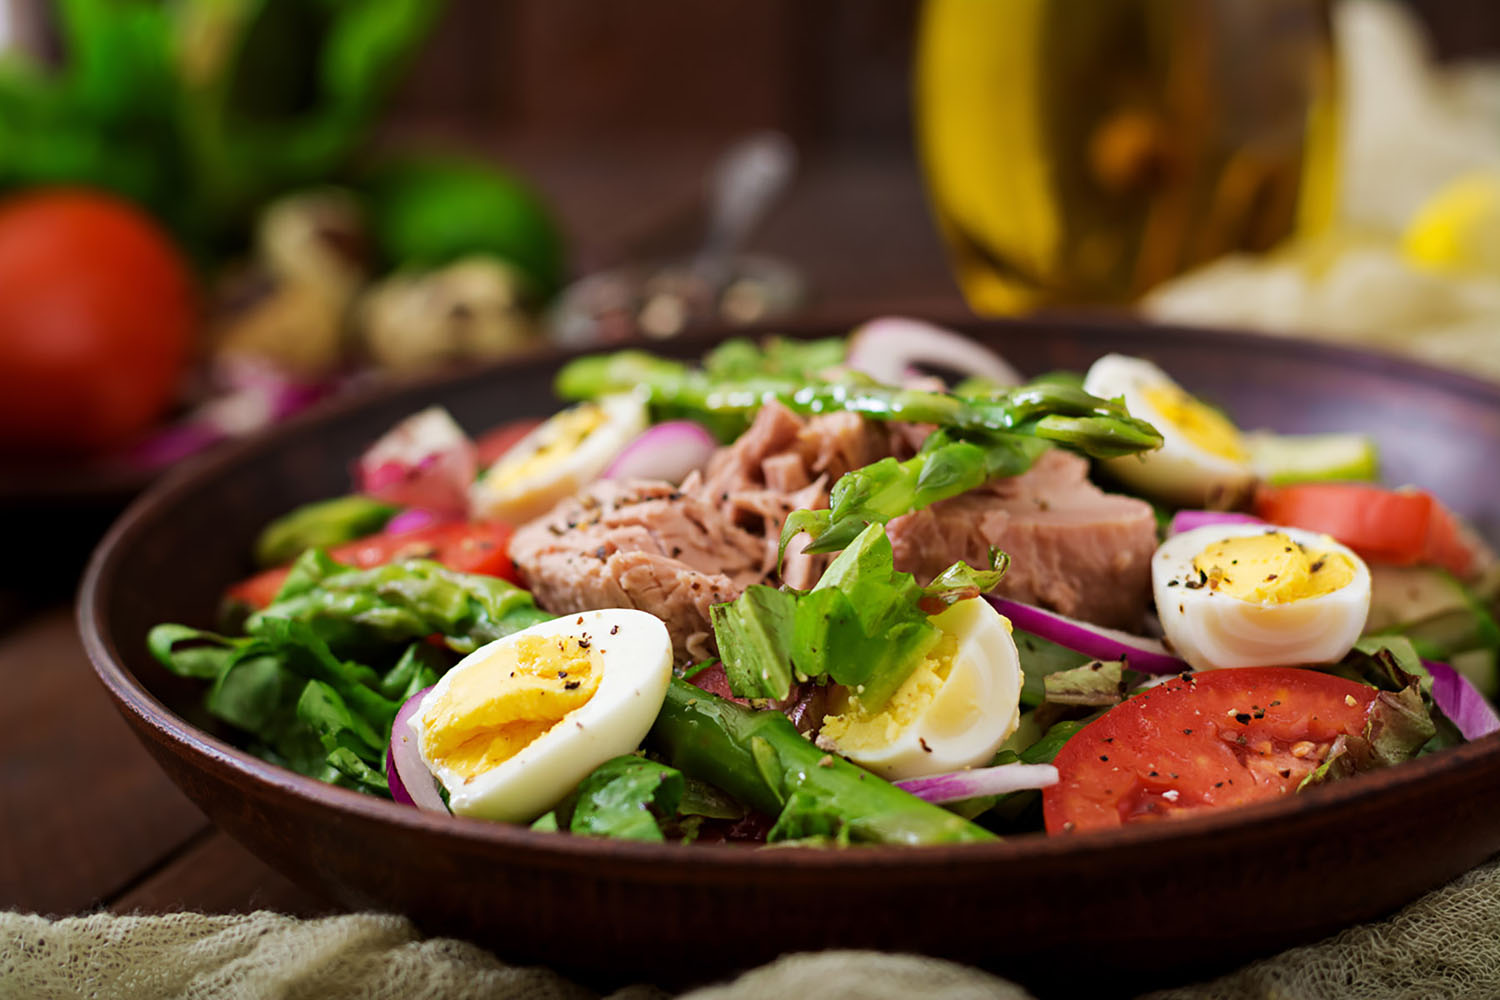 A fantastic lunchtime meal, Salade Niçoise was invented in Nice, France.